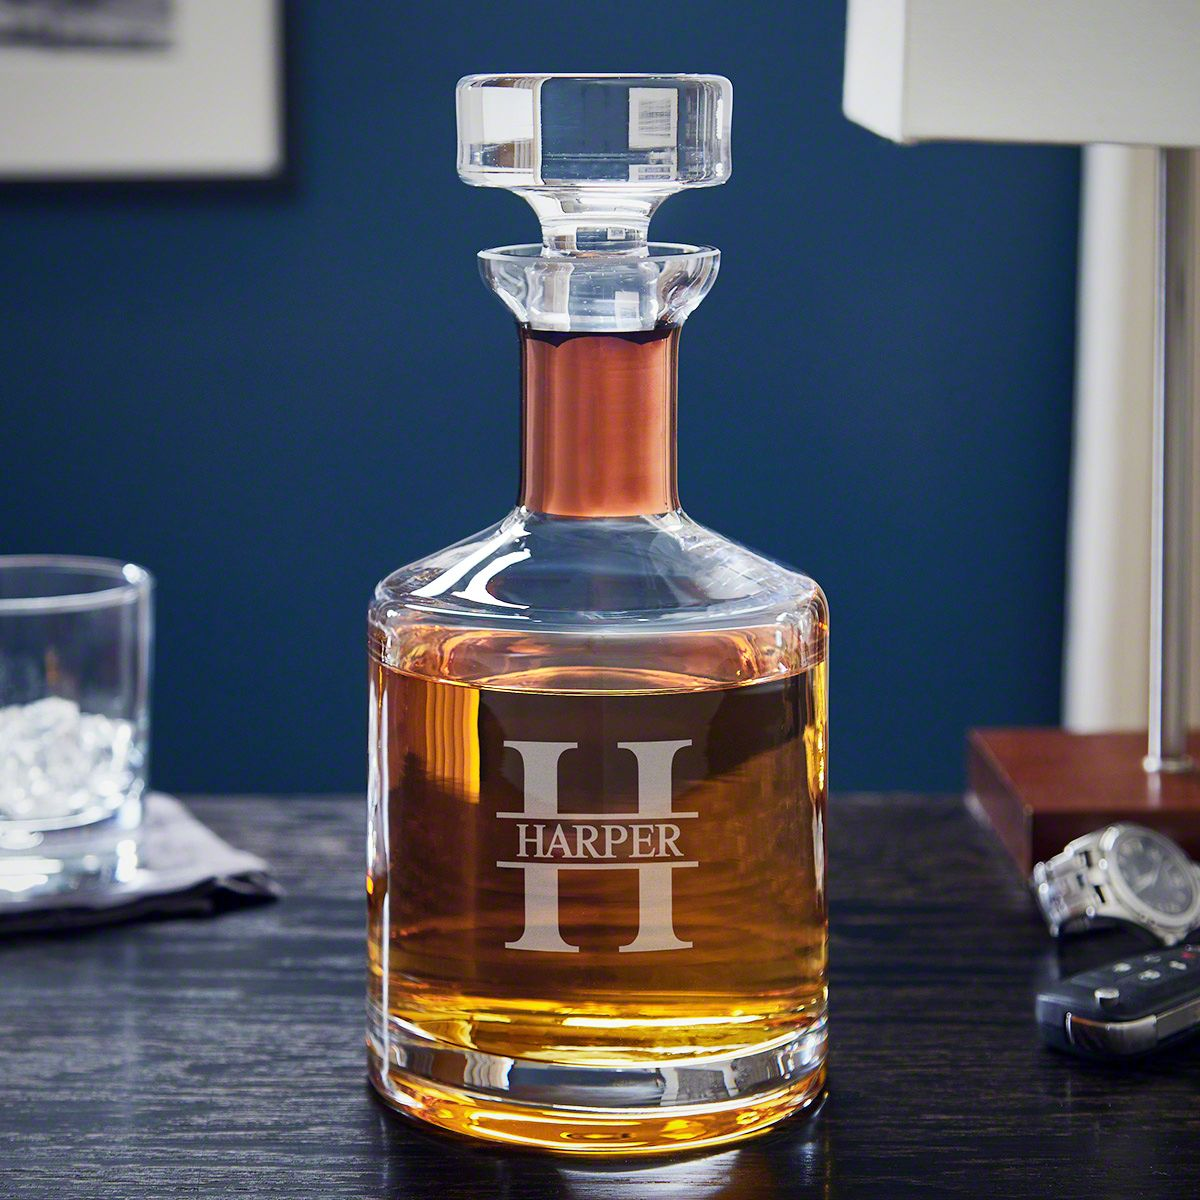 Oakmont Personalized Liquor Decanter with Copper Collar